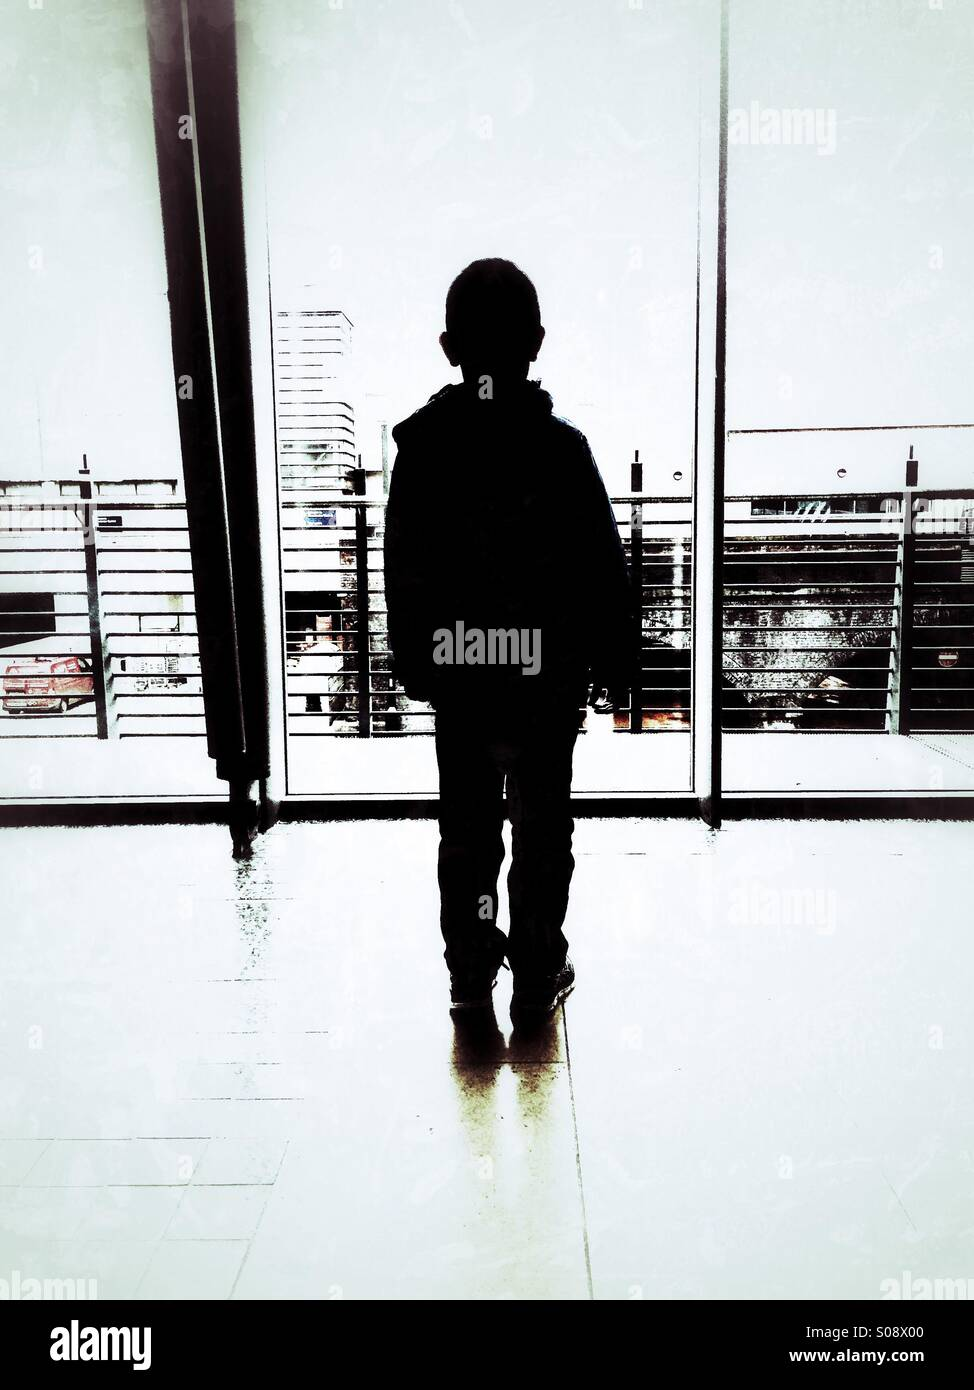 Boy standing inside a building - Stock Image